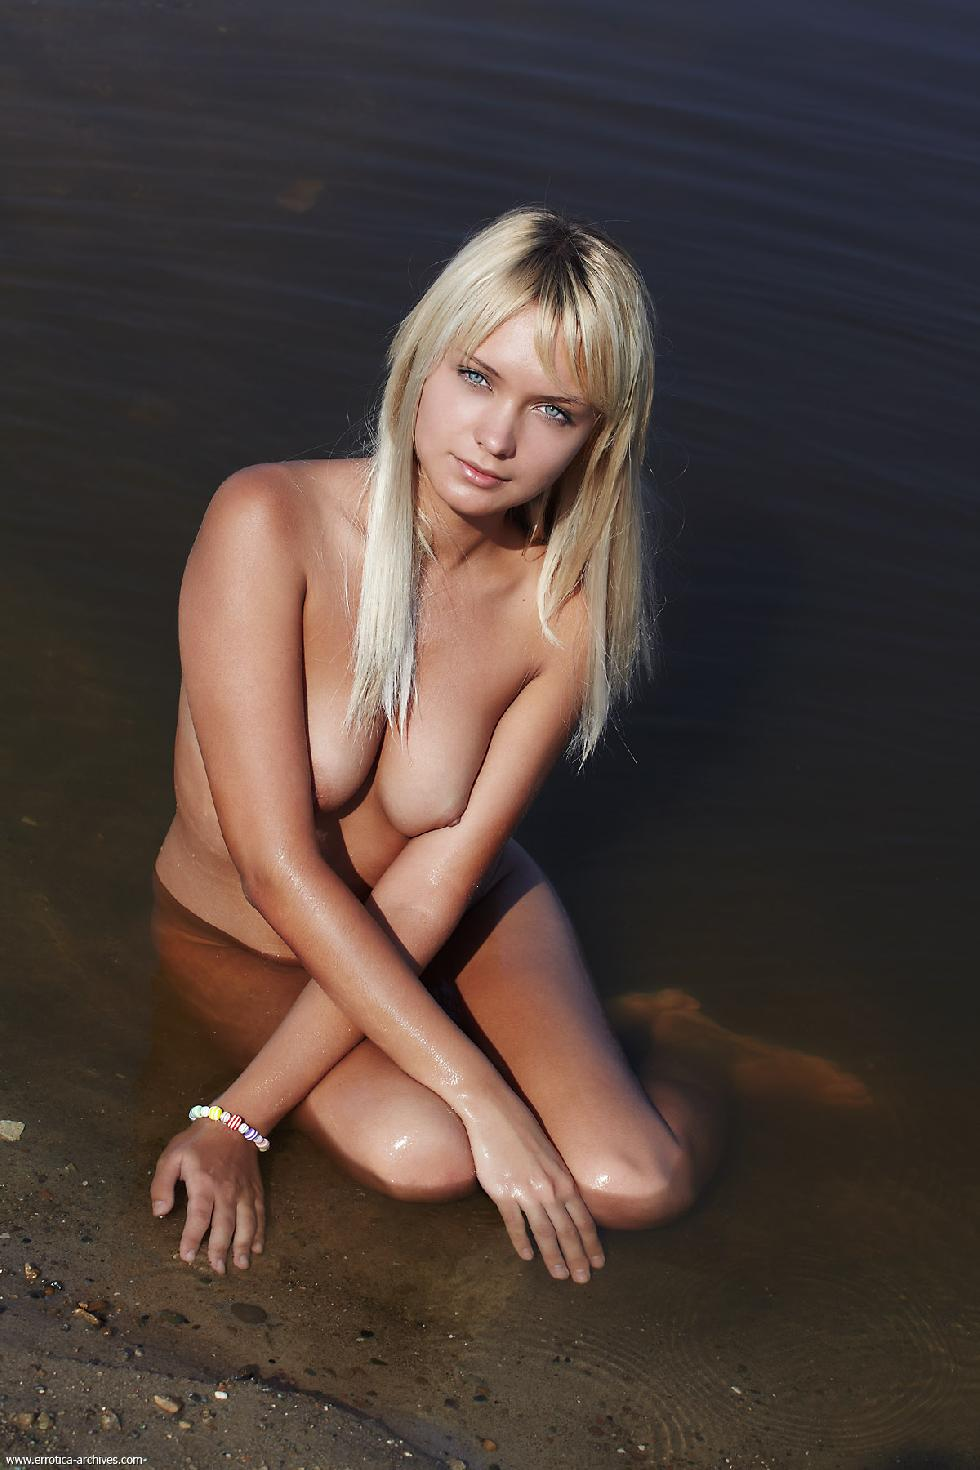 Young blonde is posing in the lake - Lada - 11